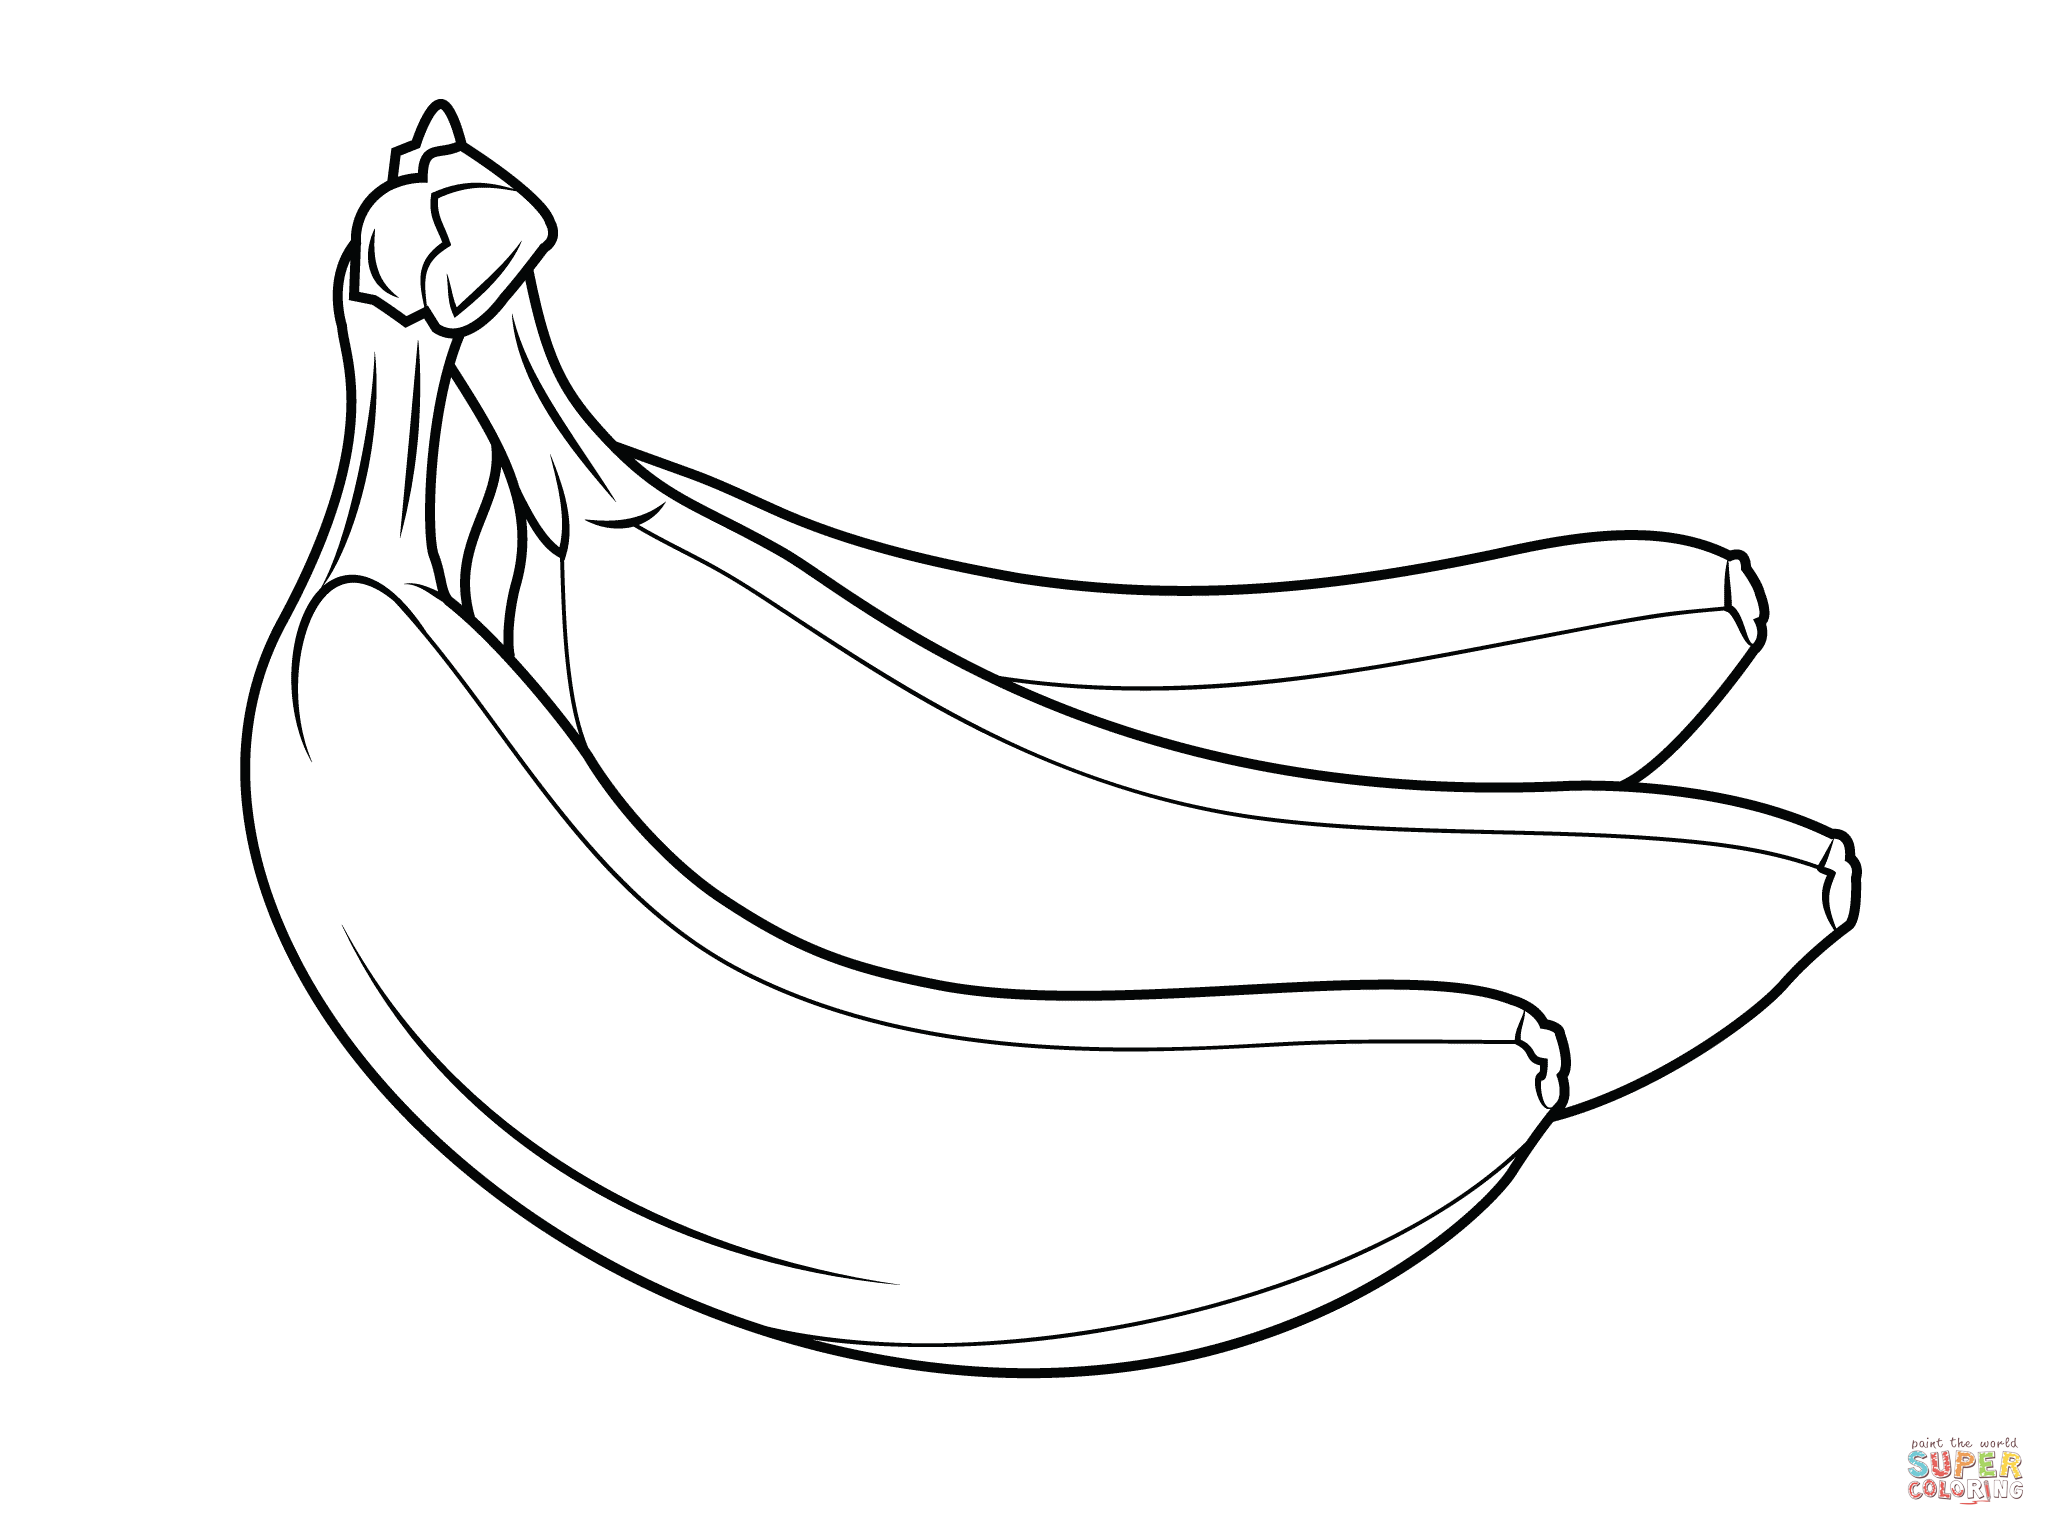 coloring pages of bananas banana coloring pages to download and print for free of bananas coloring pages